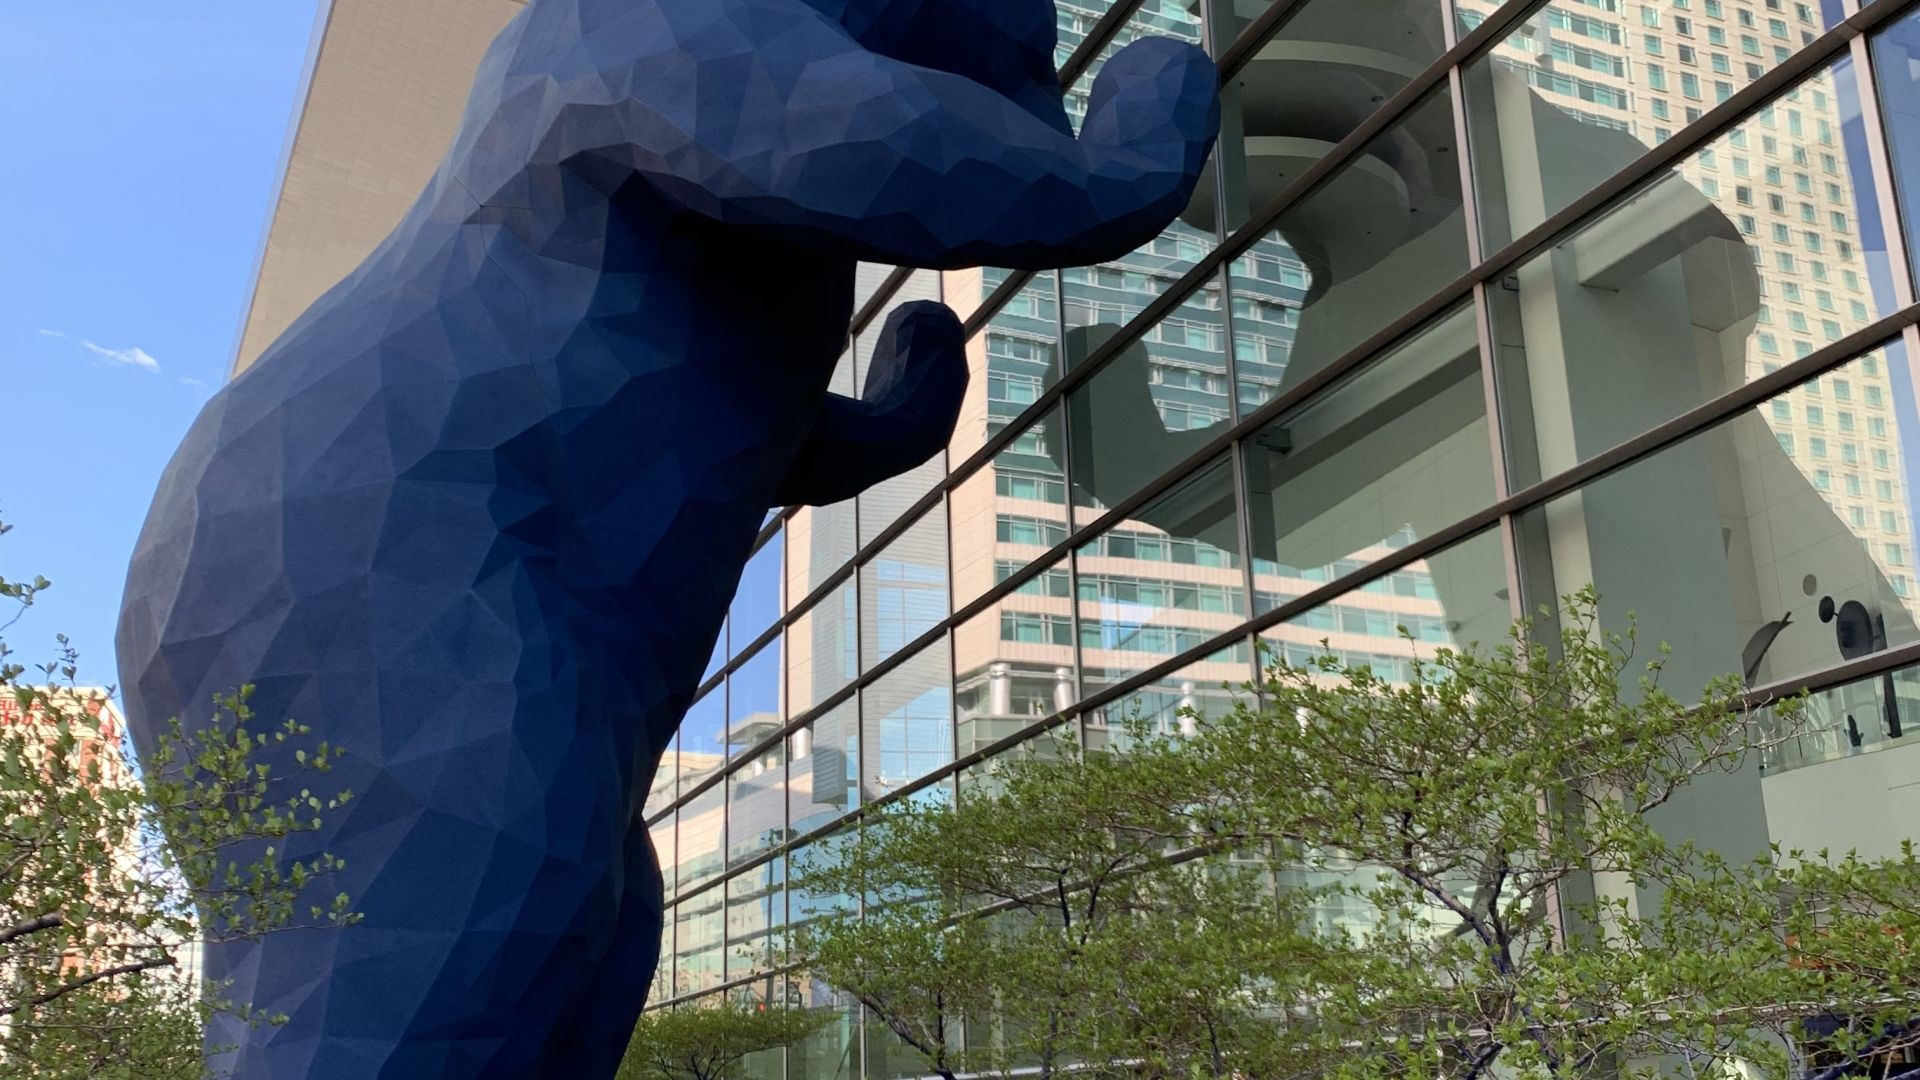 A blue bear statue peeking into the Colorado Convention Center in Denver.